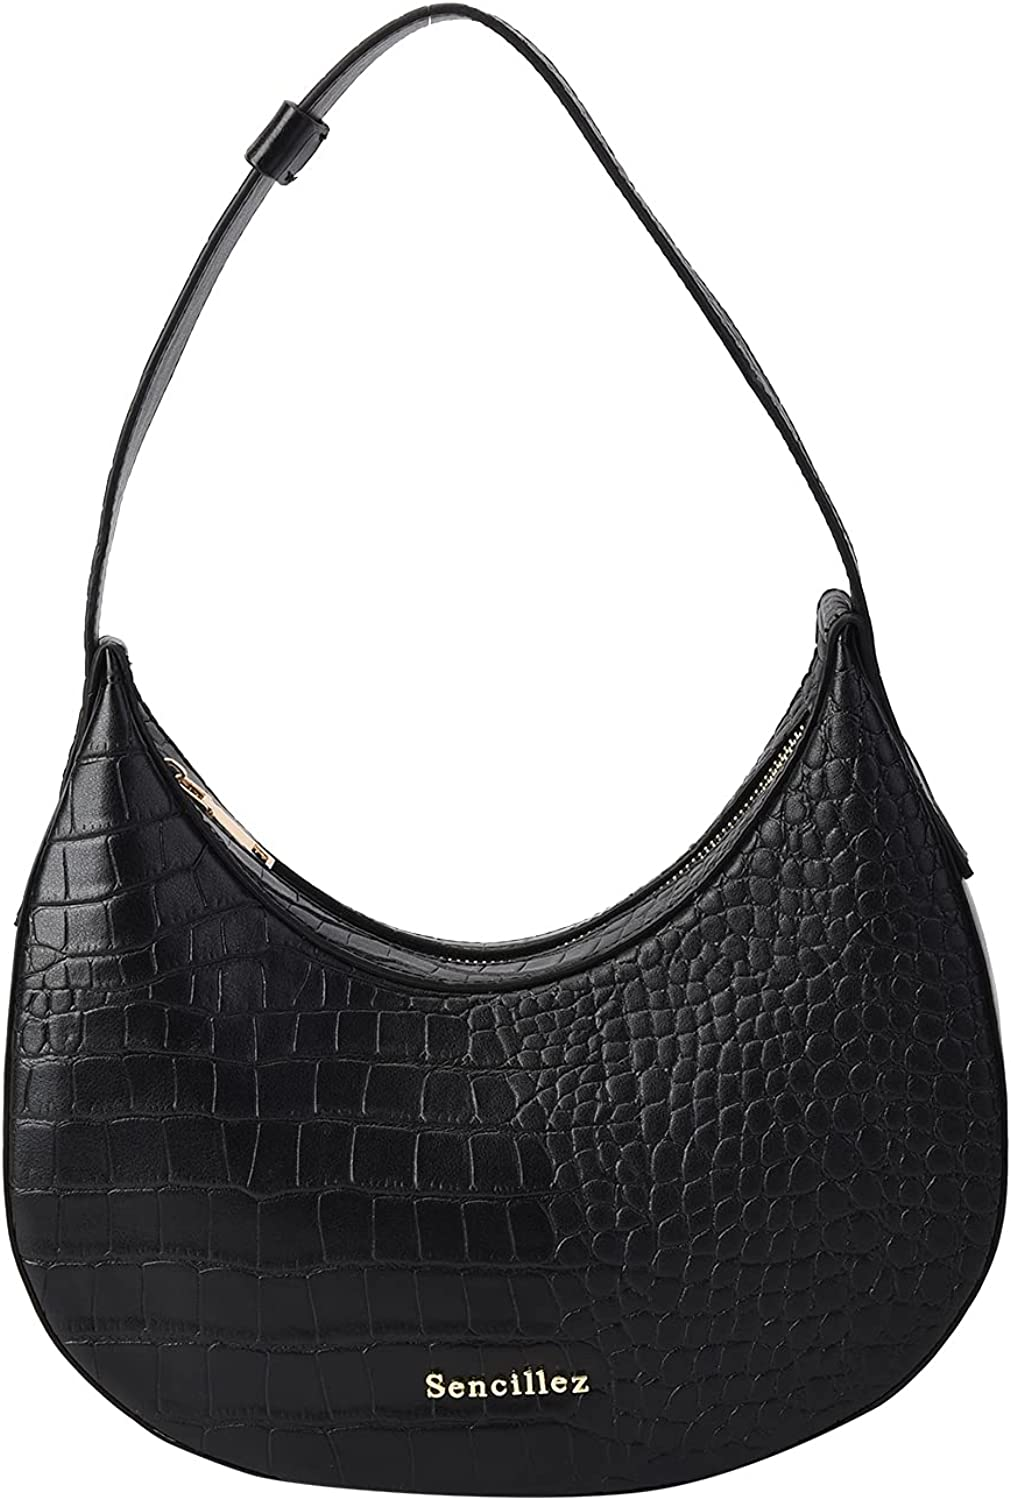 Shop LC SENCILLEZ Genuine Leather Hobo Swivel Croco Quality inspection Embossed Bag Outstanding